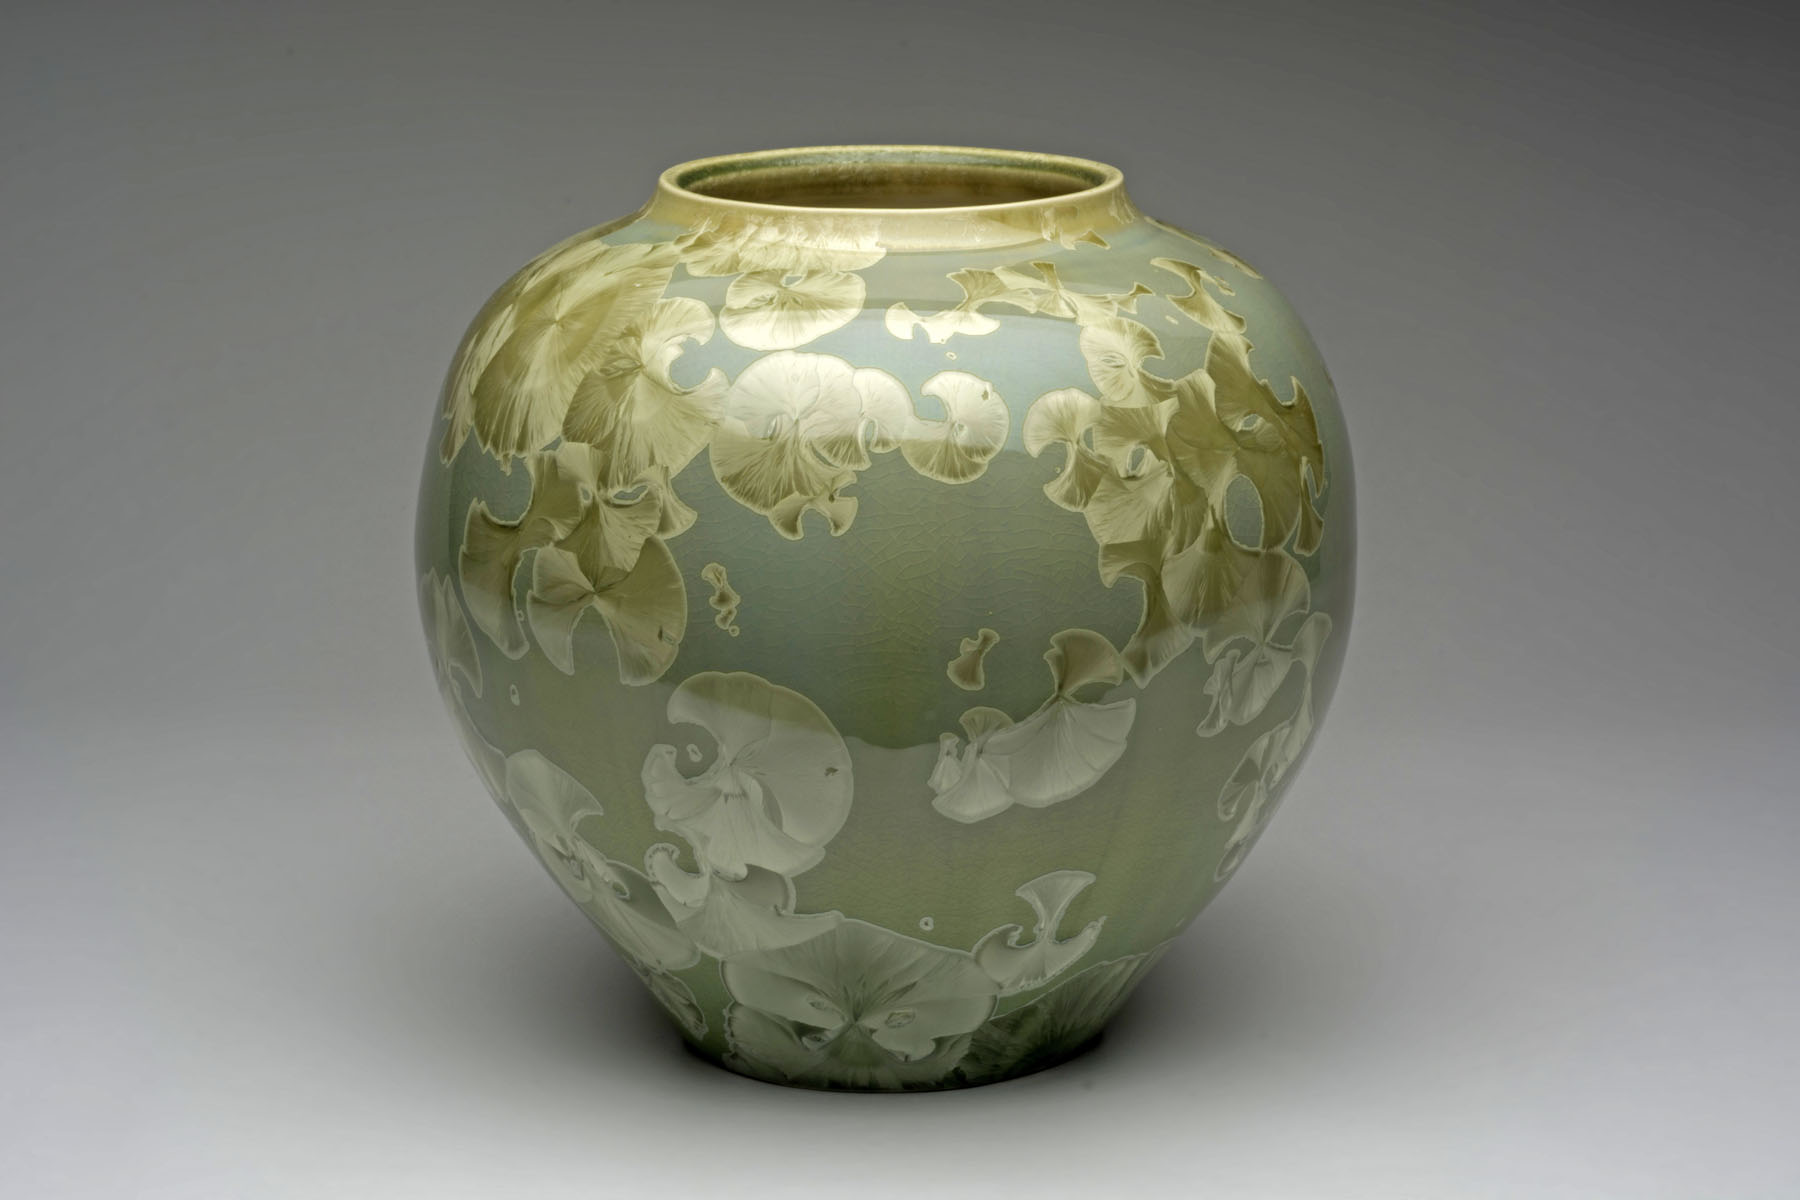 Yumiko Katsuya - Katsuya is fascinated with the natural patterns, mysterious colours, and sense of translucent depth in crystalline glazes. She has a passion for creating functional art, particularly teapots, vases, dishes and Japanese Tea Ceremony utensils.